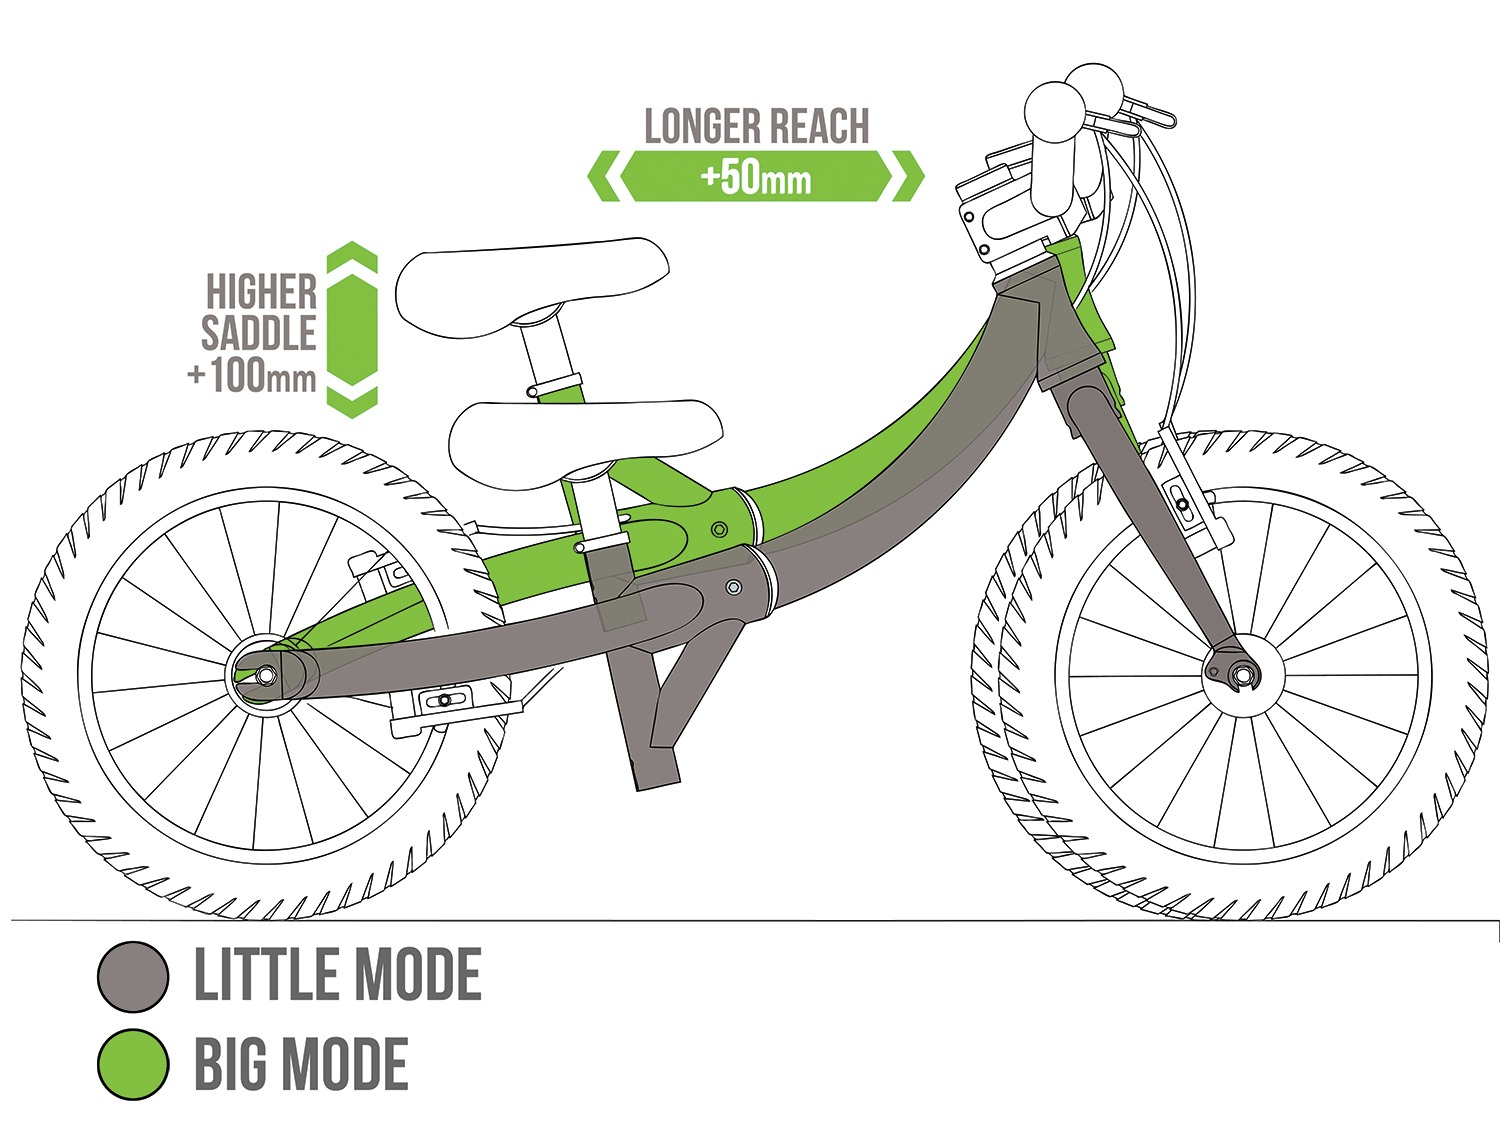 LittleBig overlay of little balance bike and big balance bike